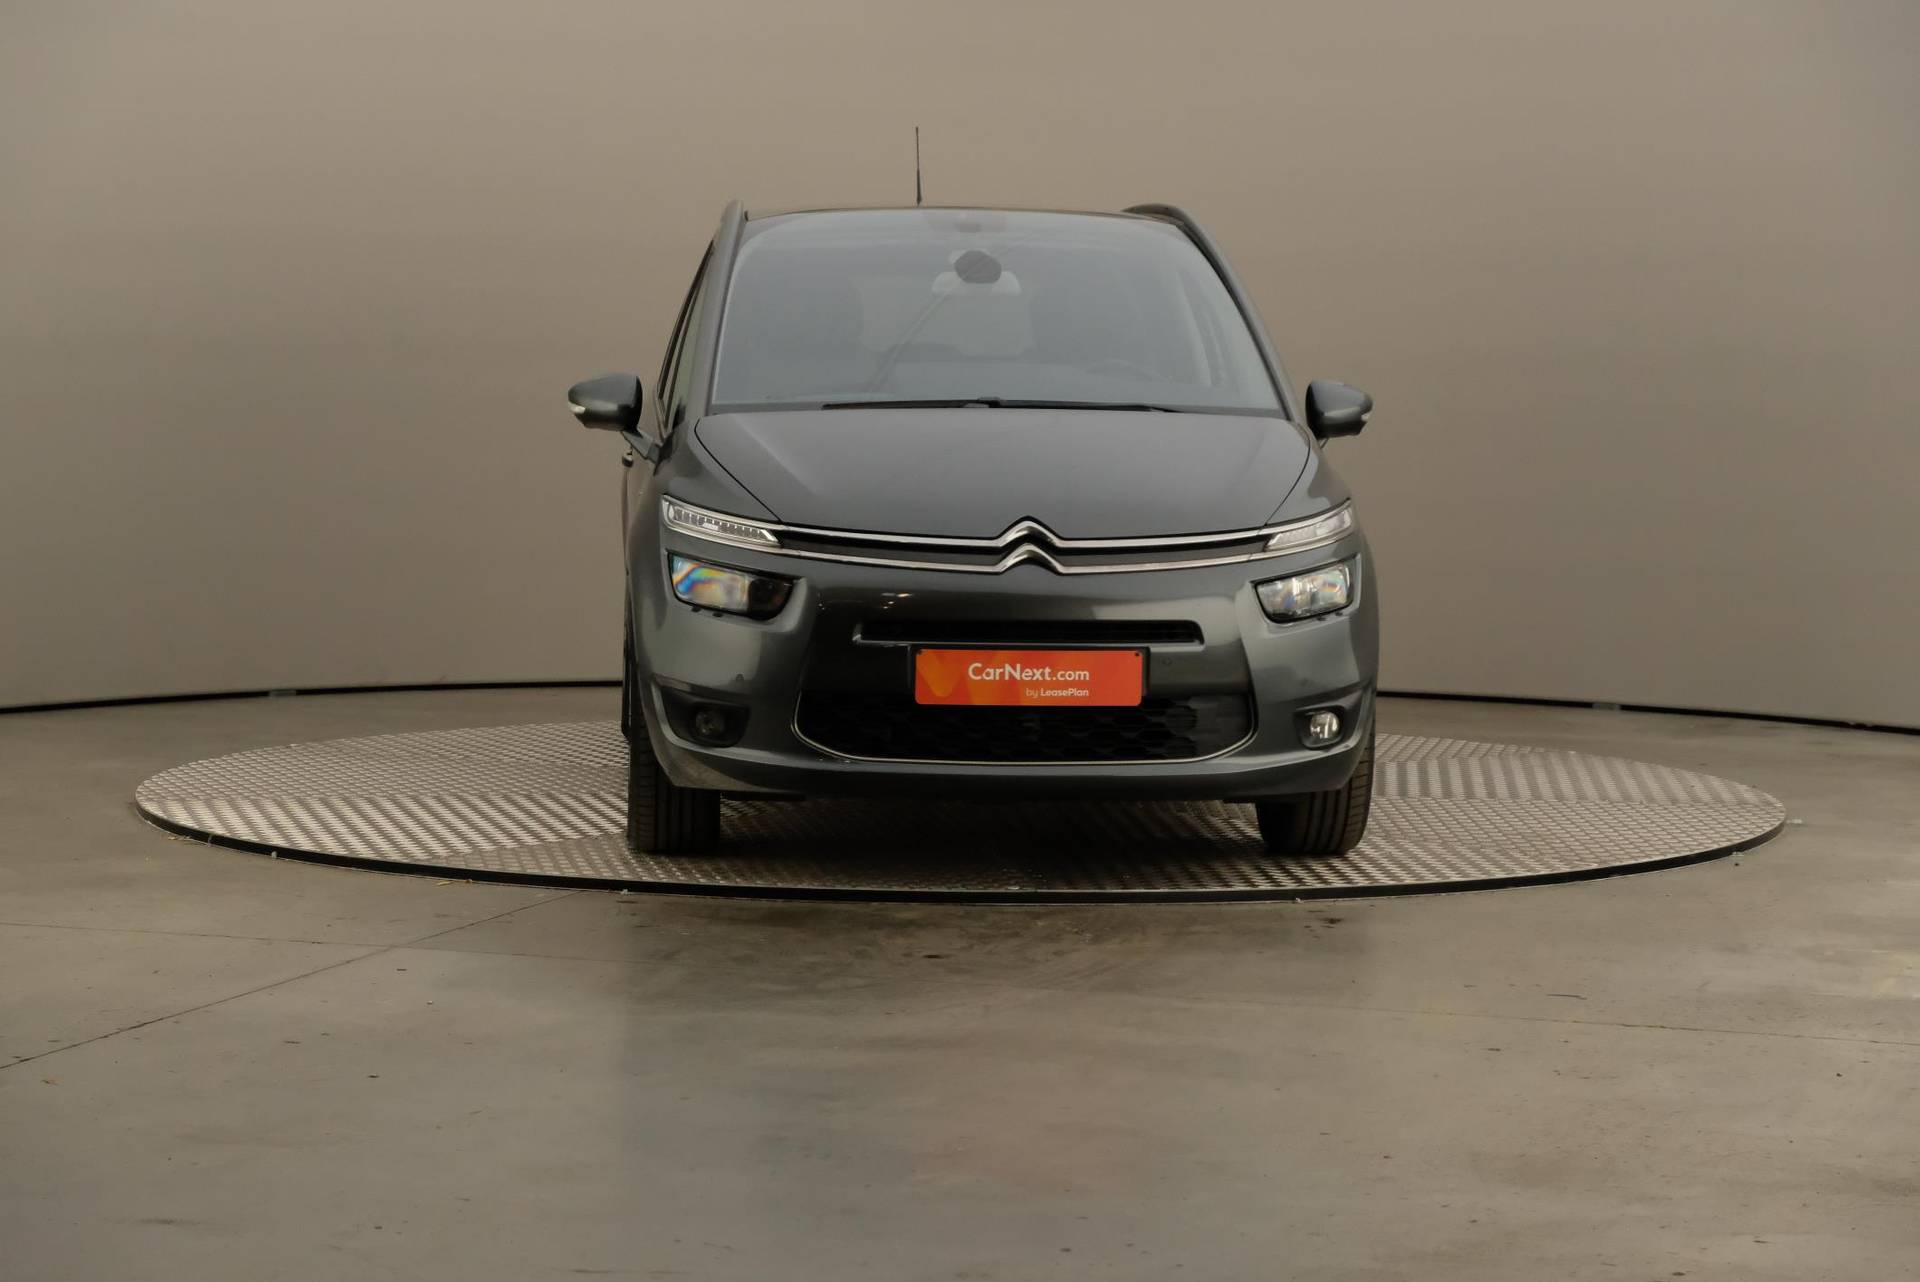 Citroën C4 Picasso e-HDi 115 ETG6, Attraction 7pl. PANO SOUND SYST. GPS CAMERA TREKHAAK..., 360-image31